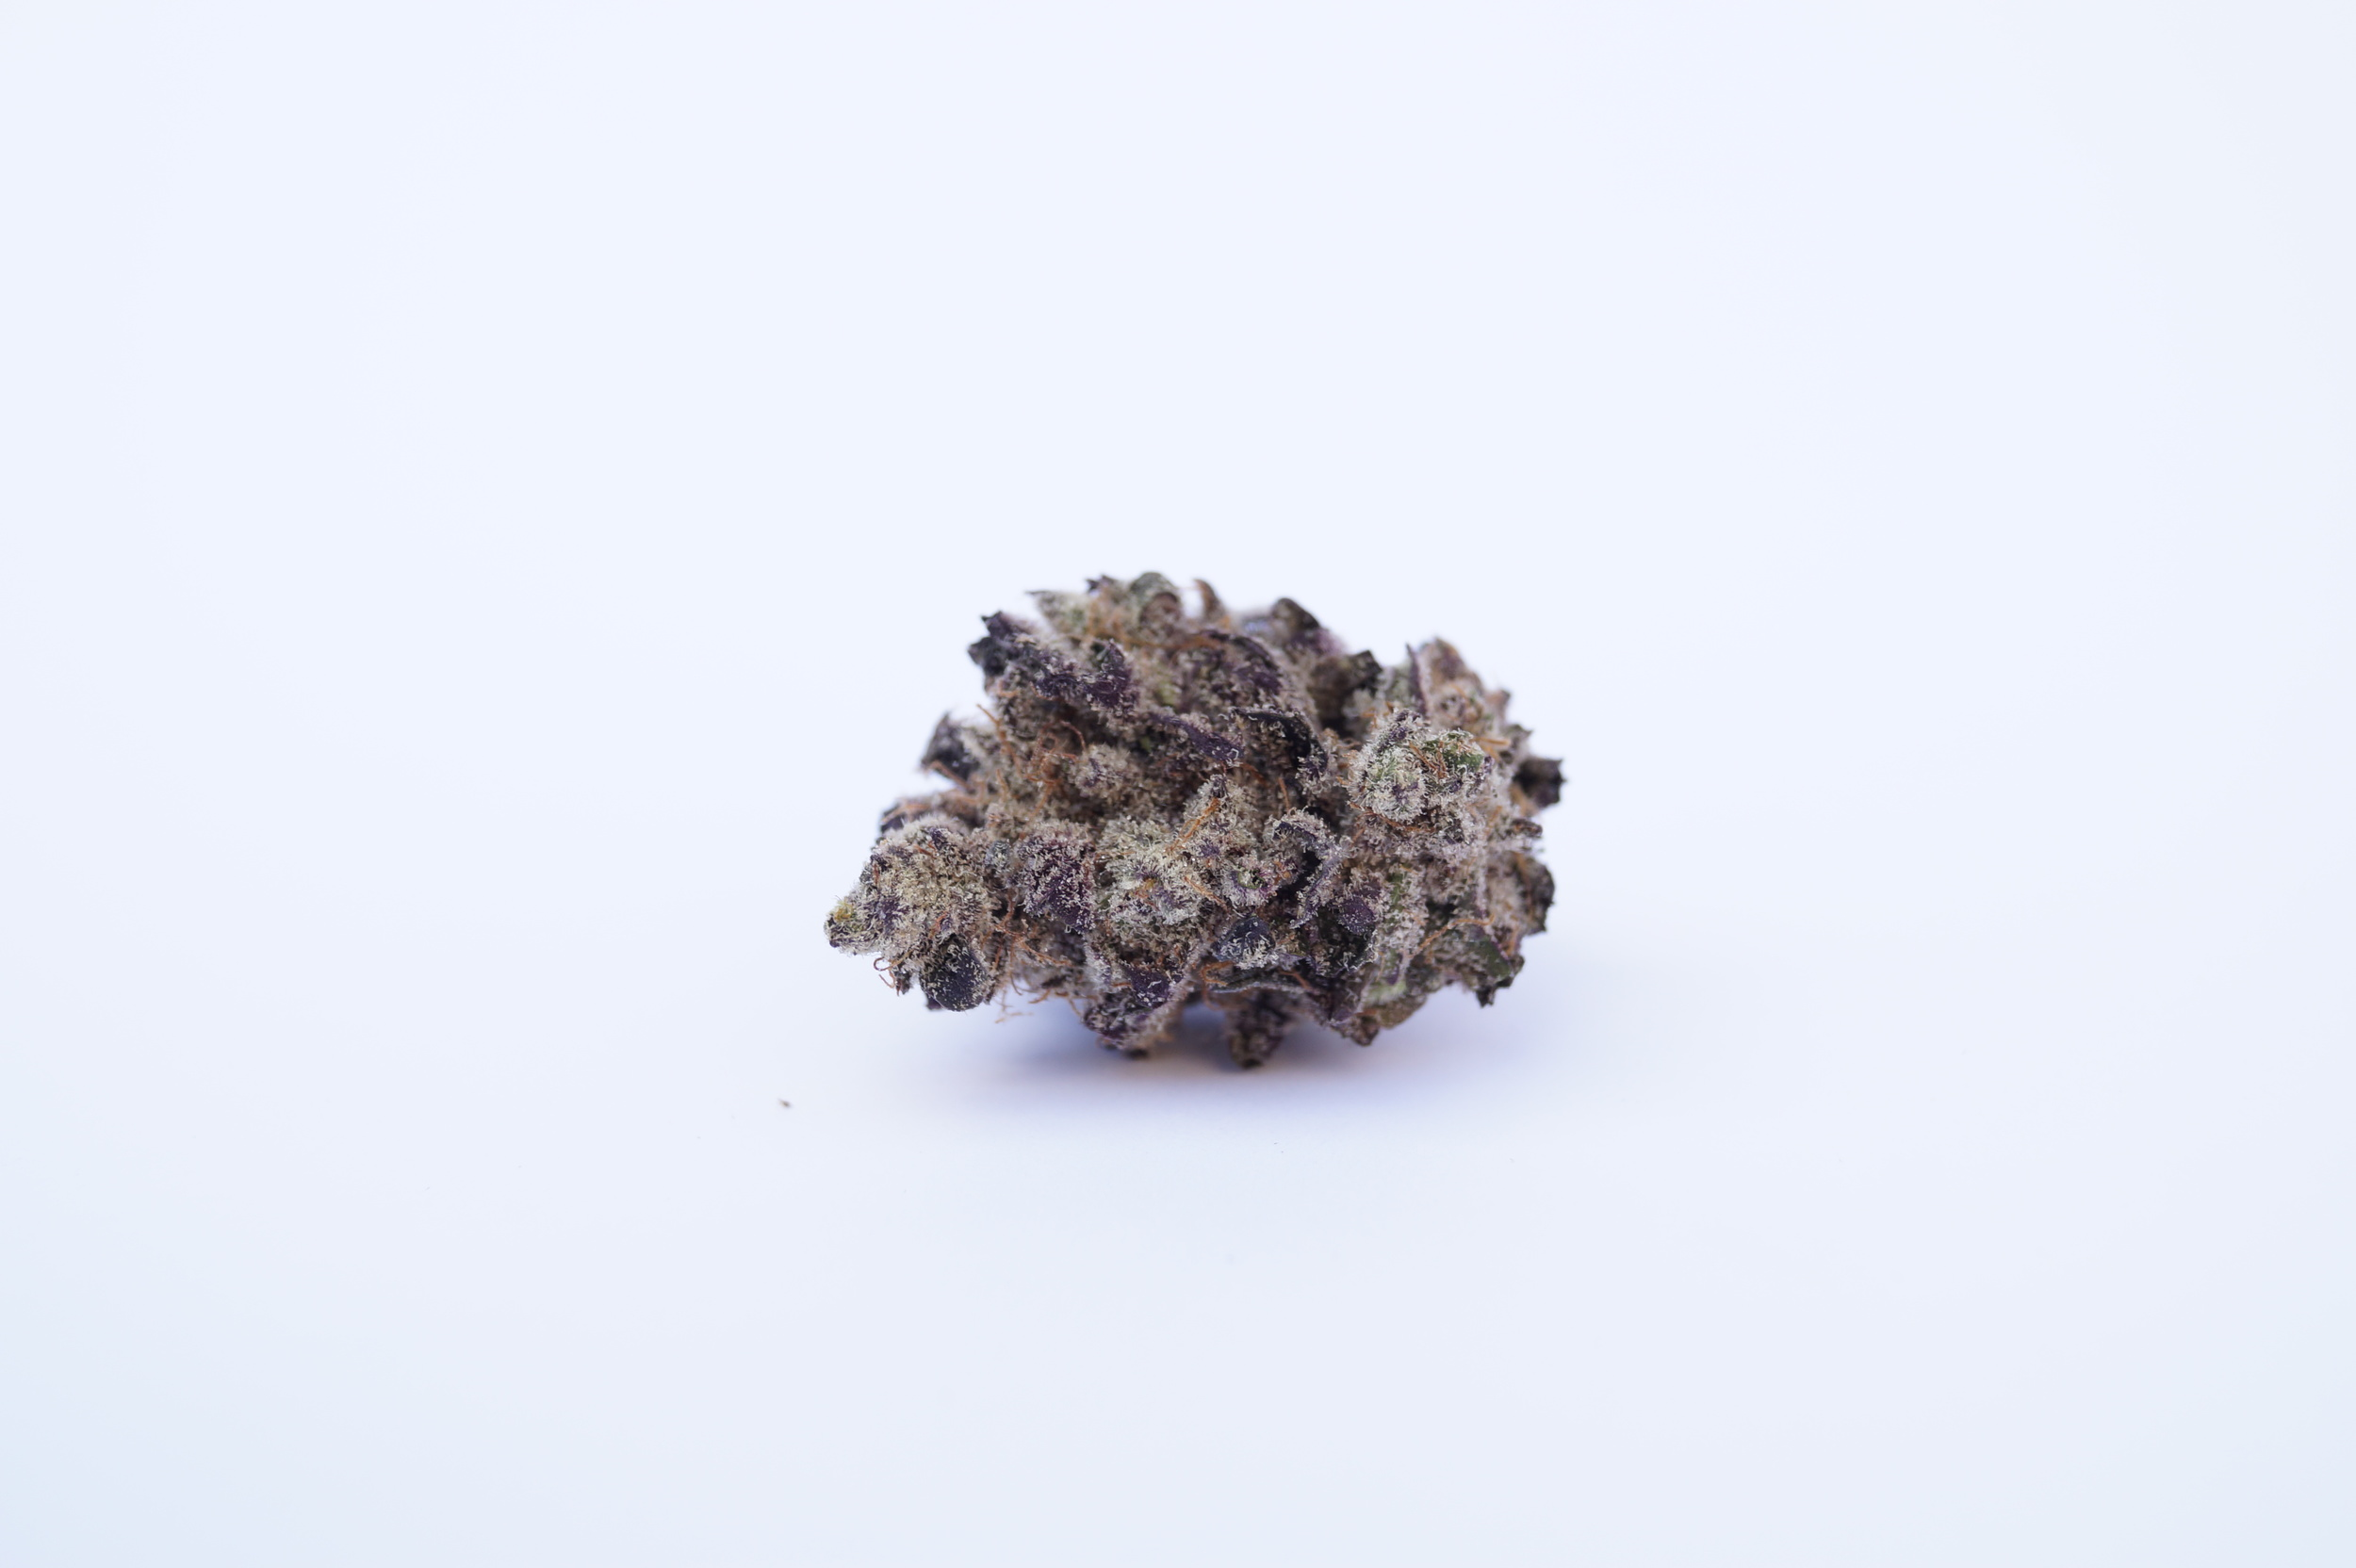 spindle frosty purple cannabis on white background blackberry trainwreck strain